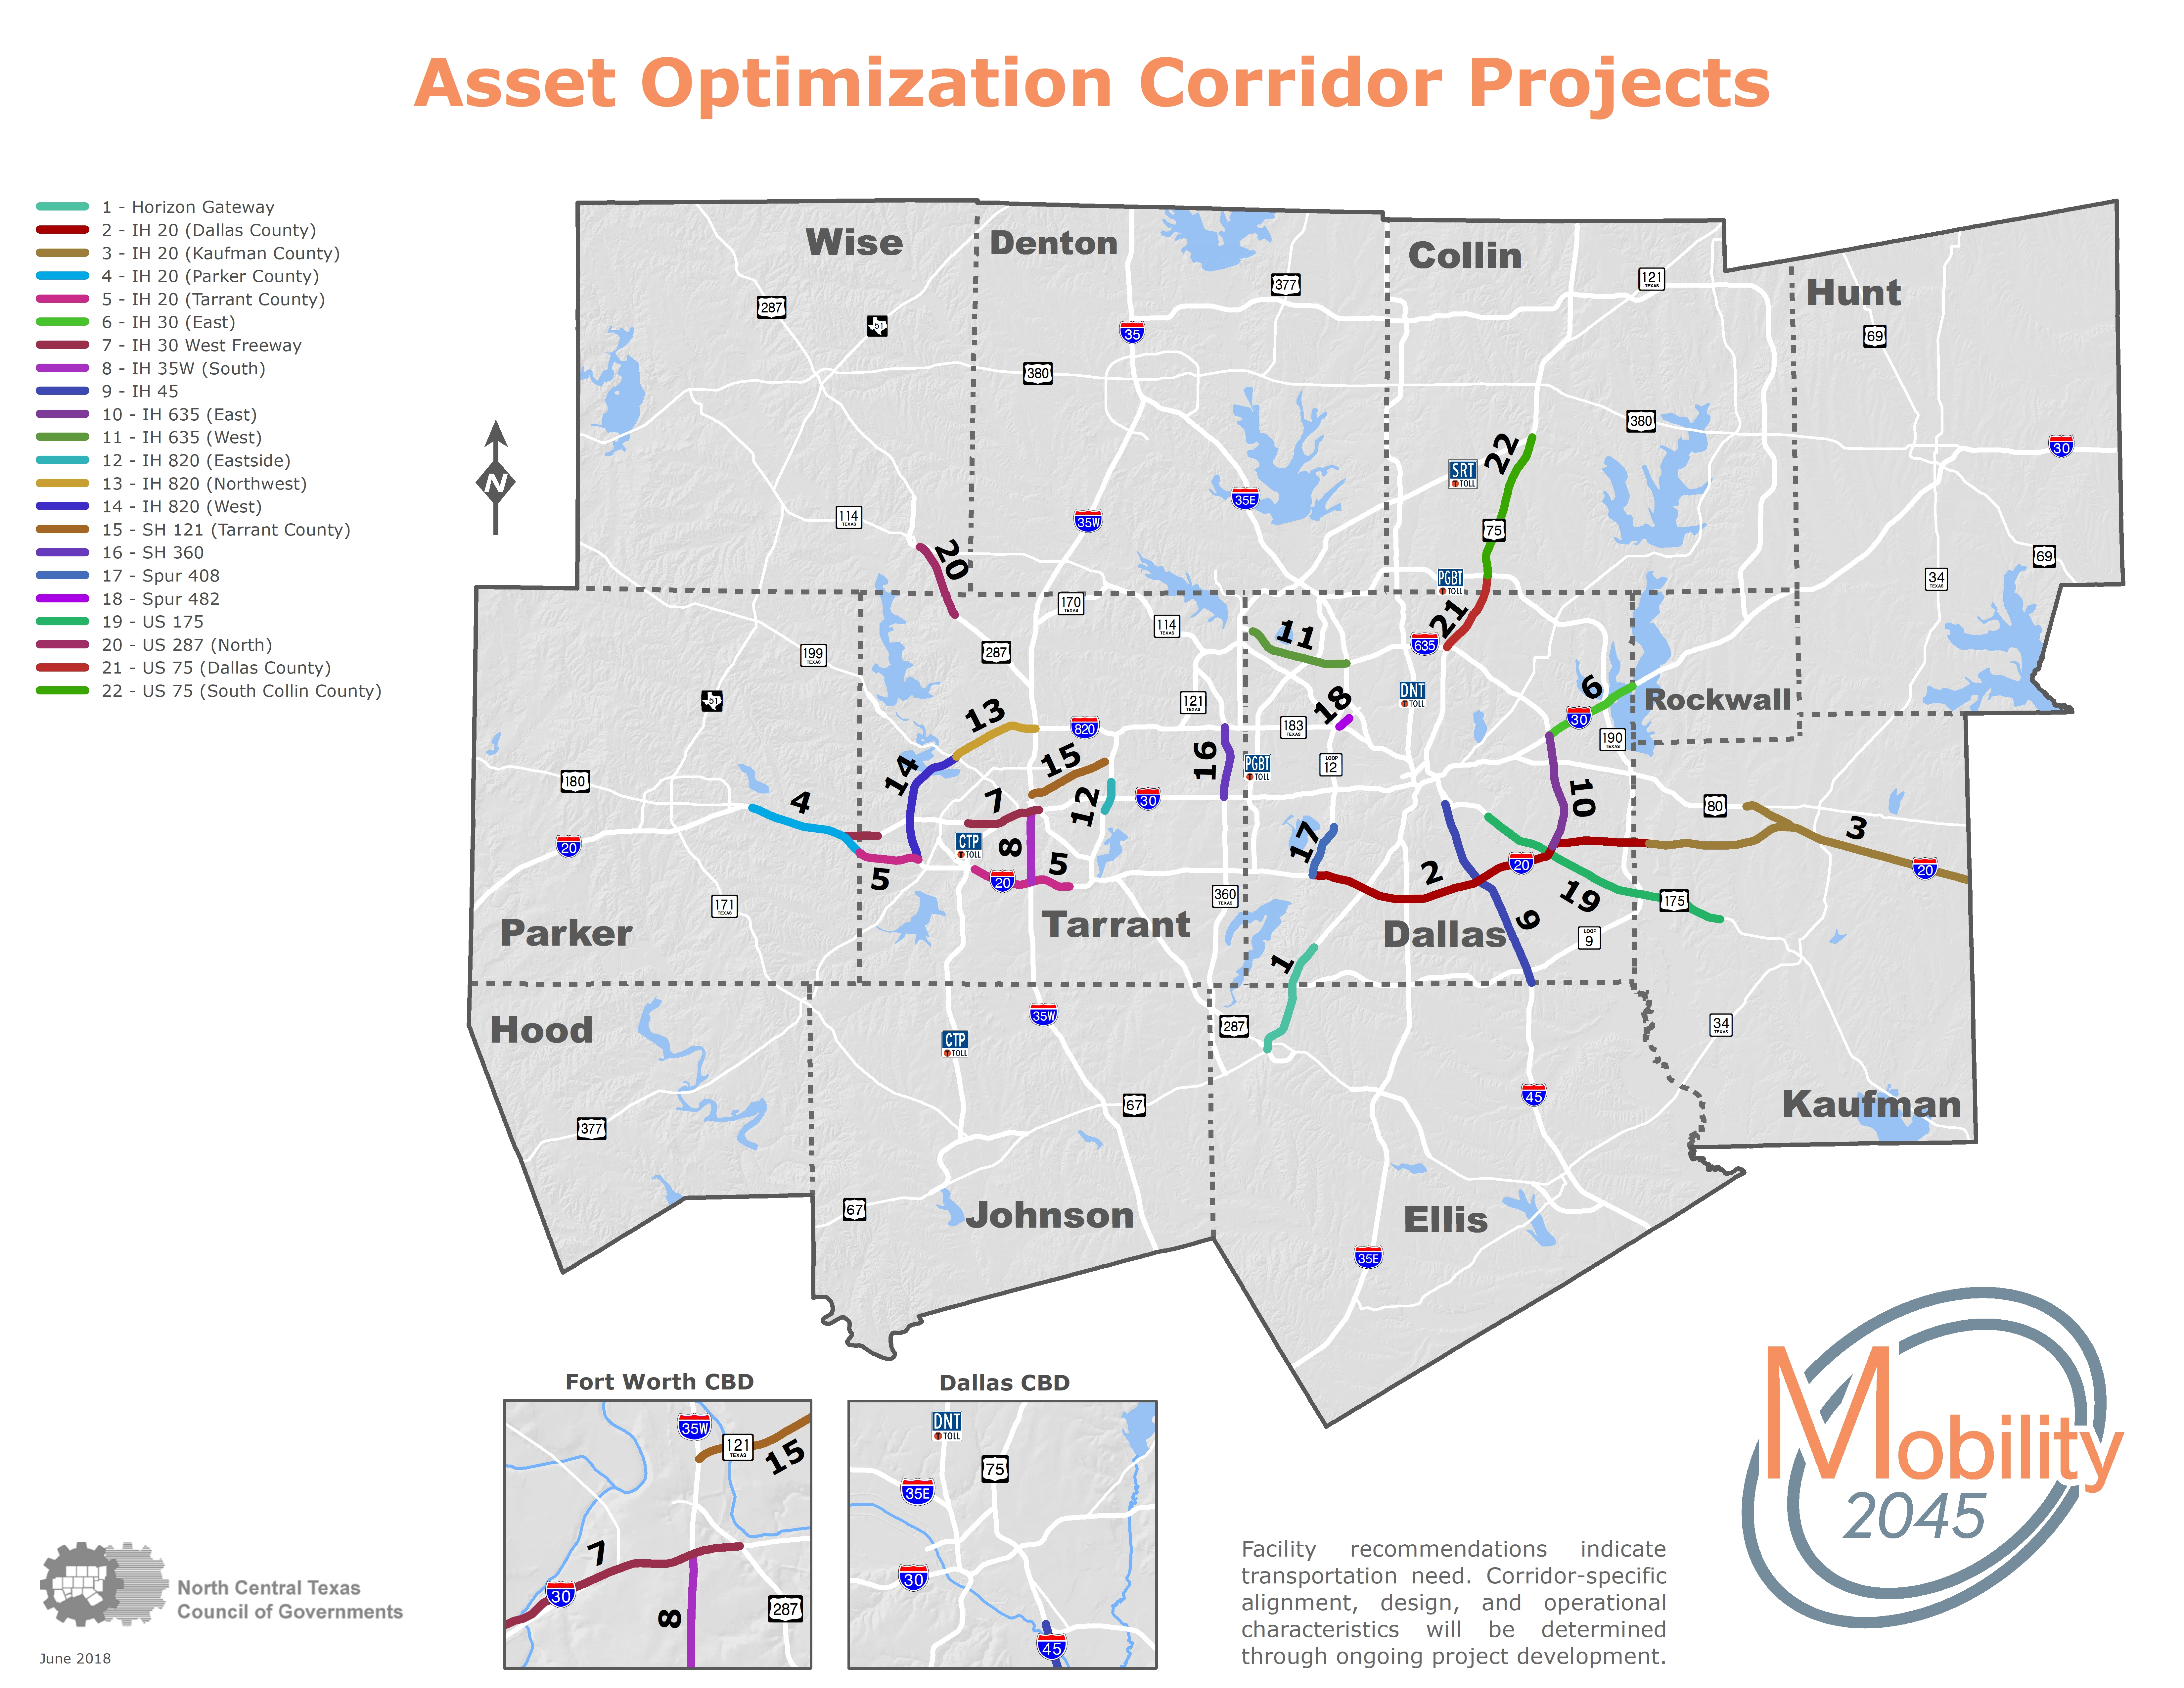 This map shows the asset optimization corridor projects and includes a table of content with the roads that will be affected by Mobility 2045